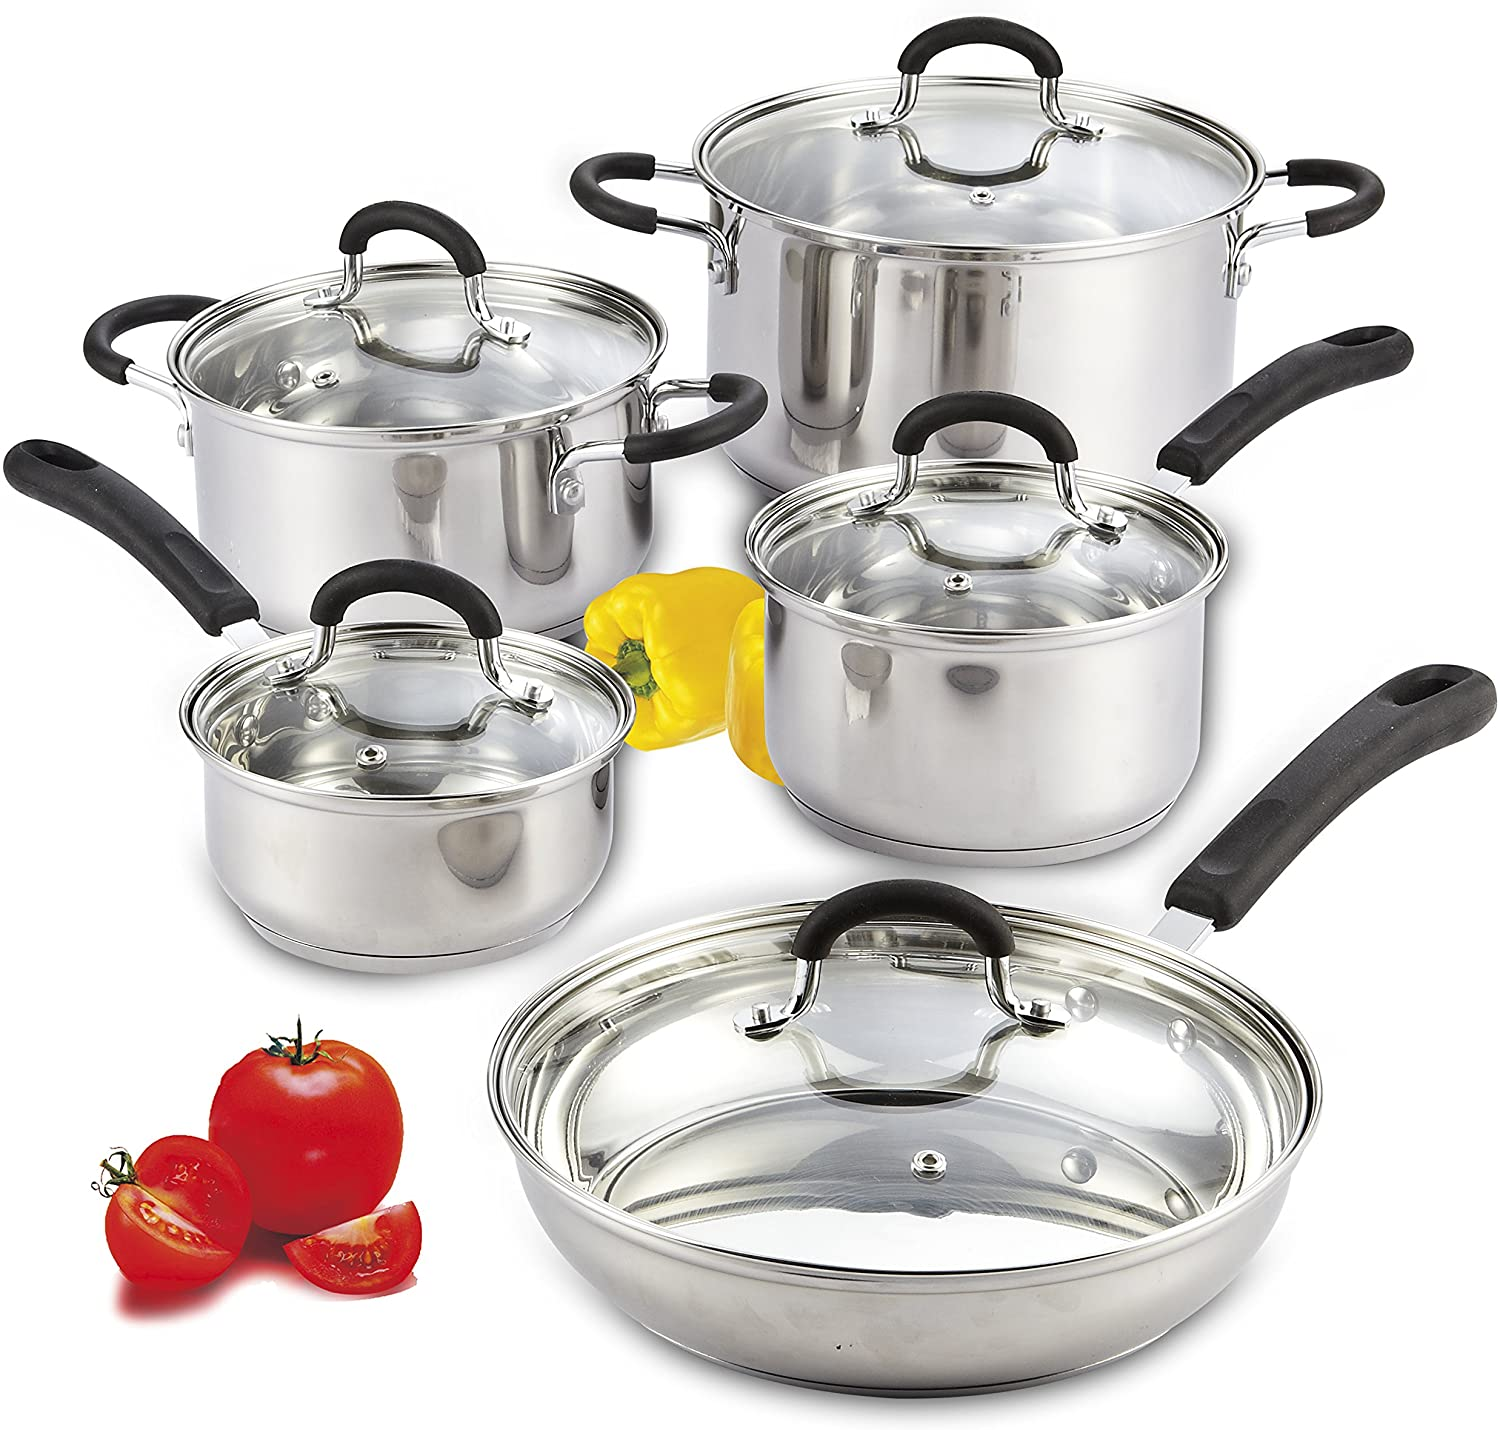 Cook N Home 10-Piece Stainless Steel Cookware for Glass Top Stoves Image